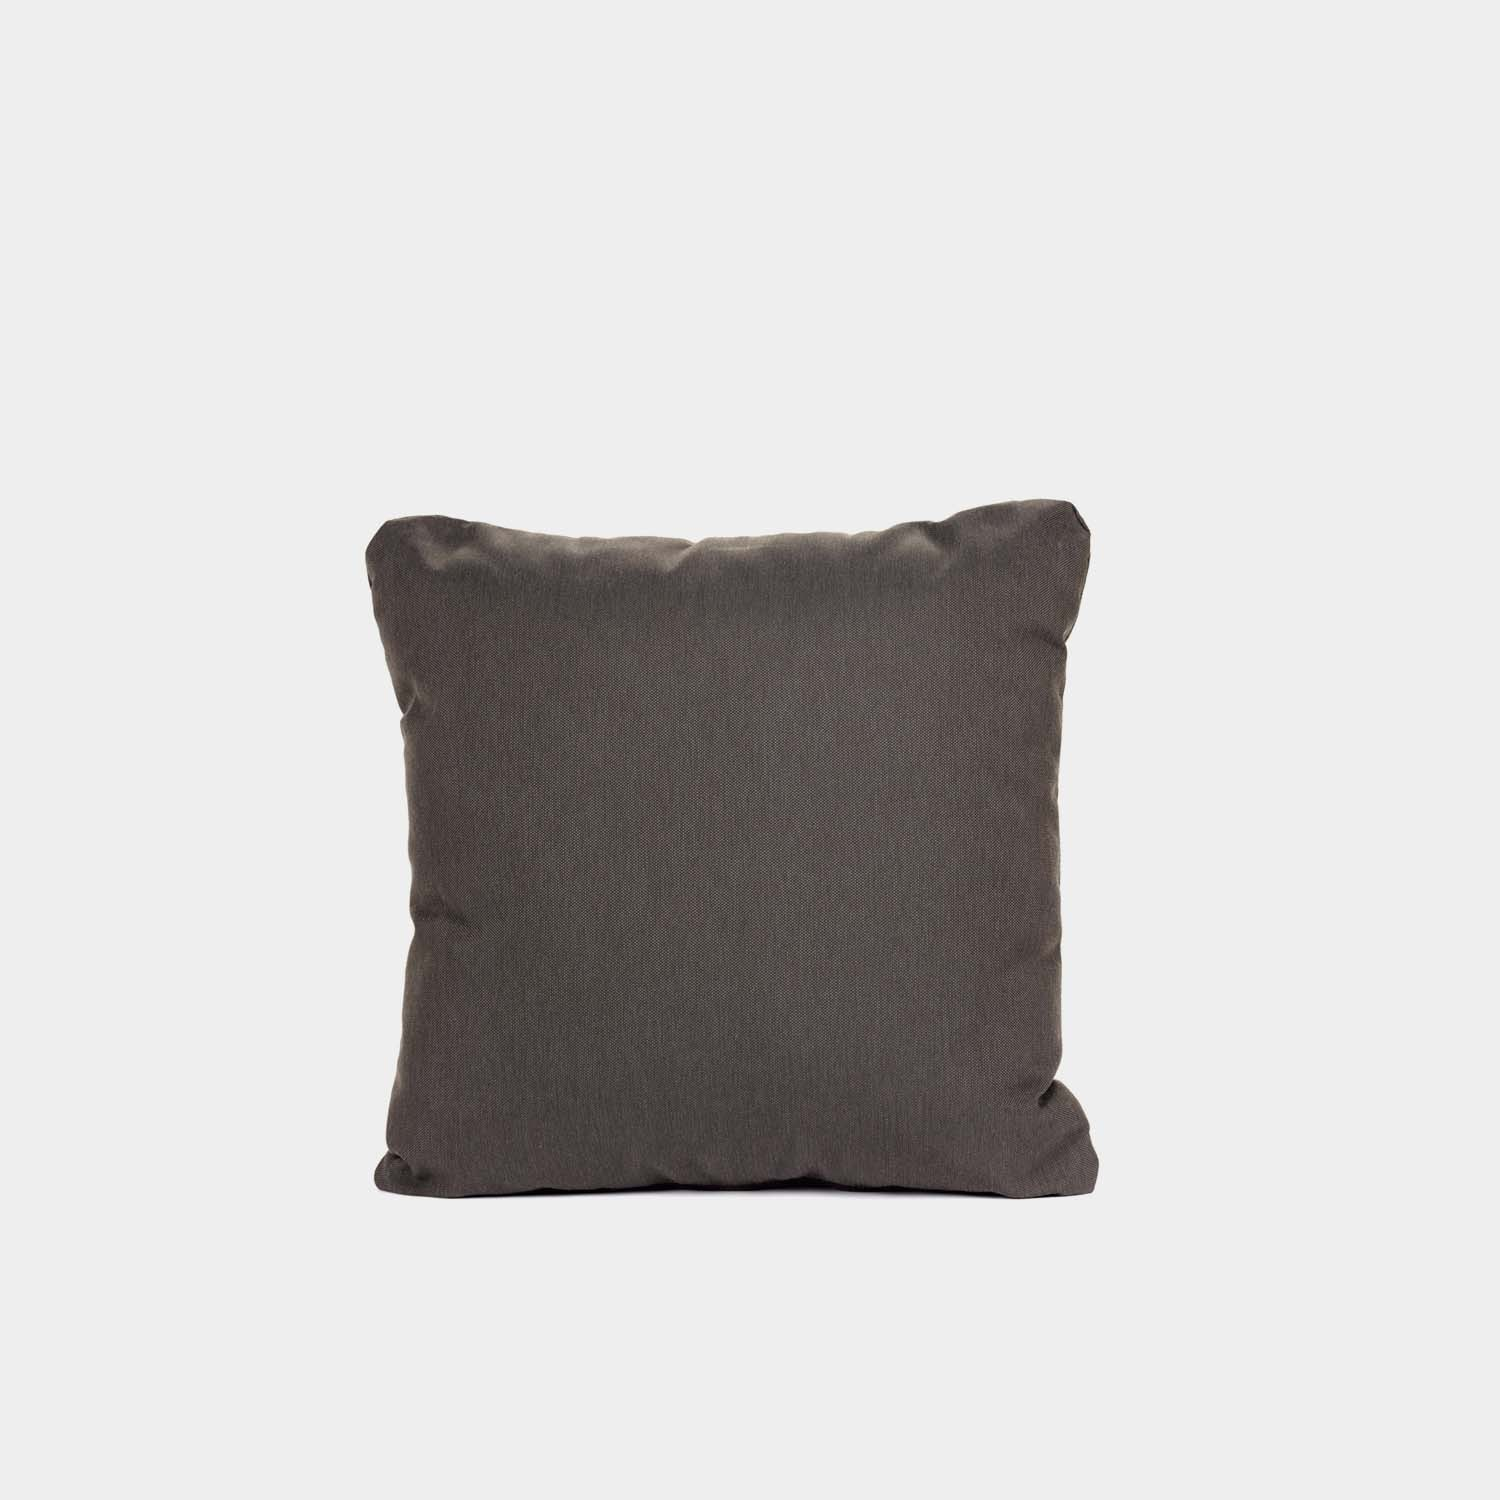 Decorative Cushion, Square, Outdoor